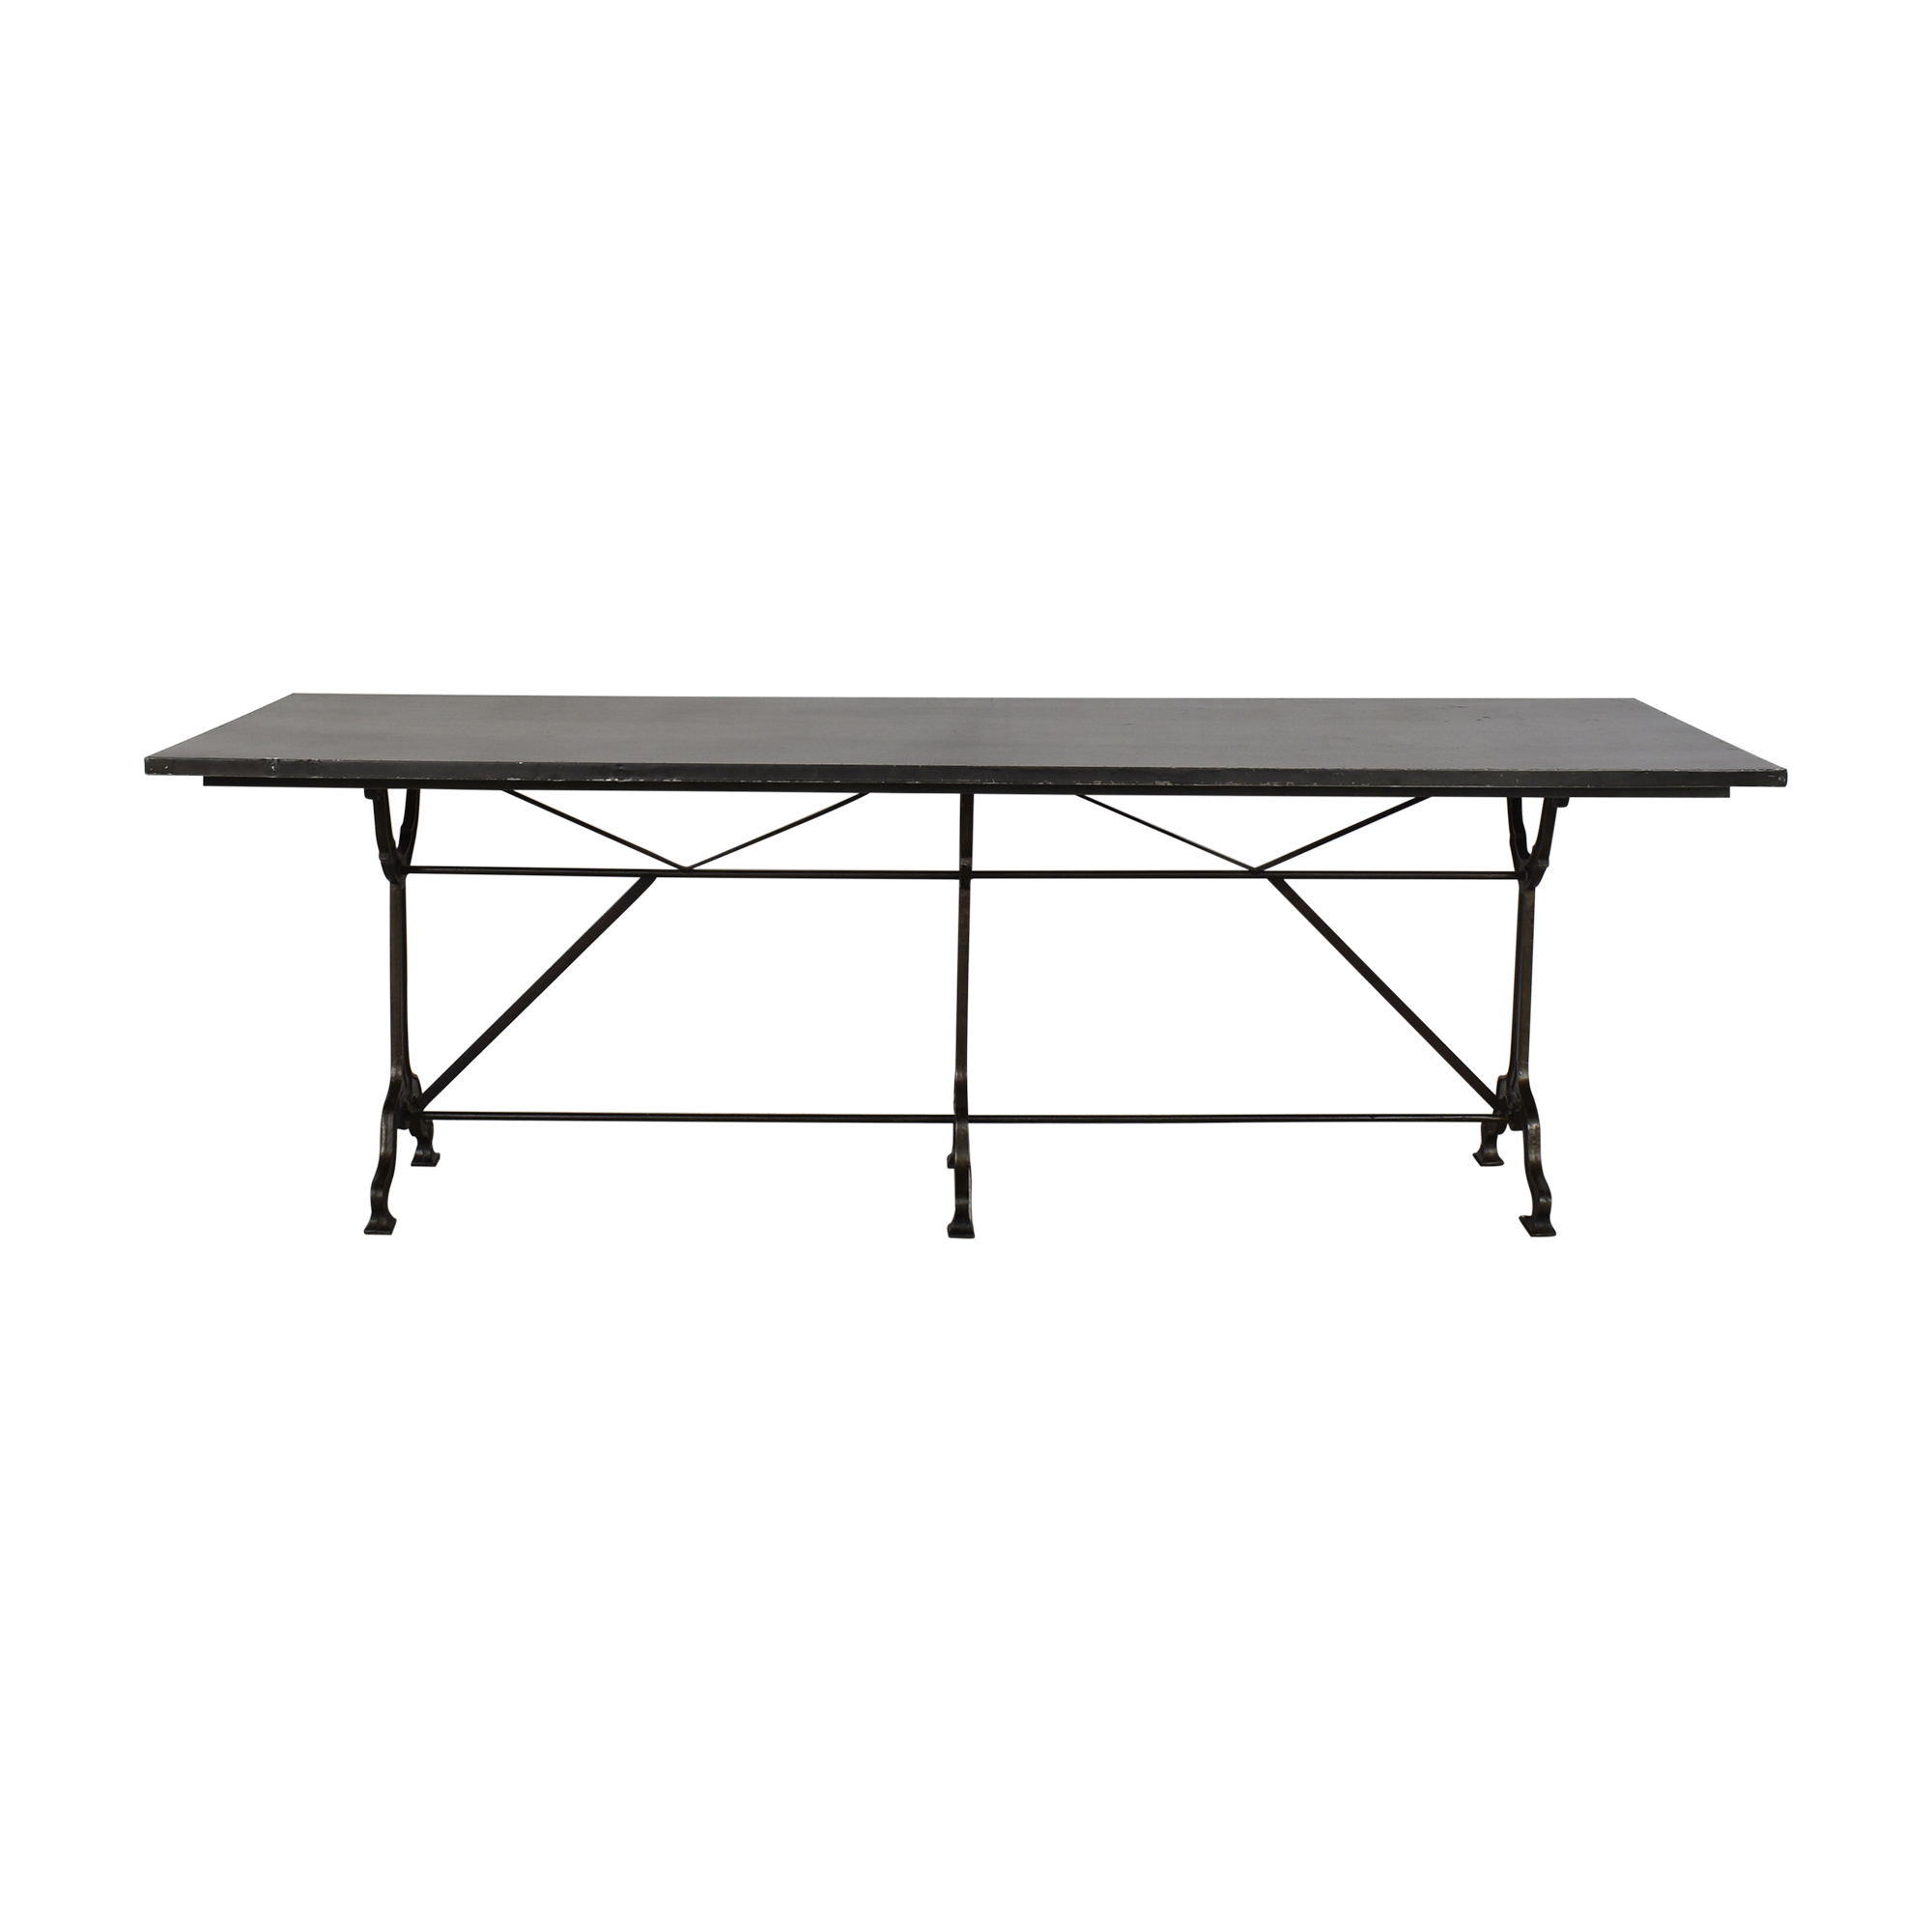 Restoration Hardware Zinc and Cast Iron Rectangular Dining Table / Dinner Tables